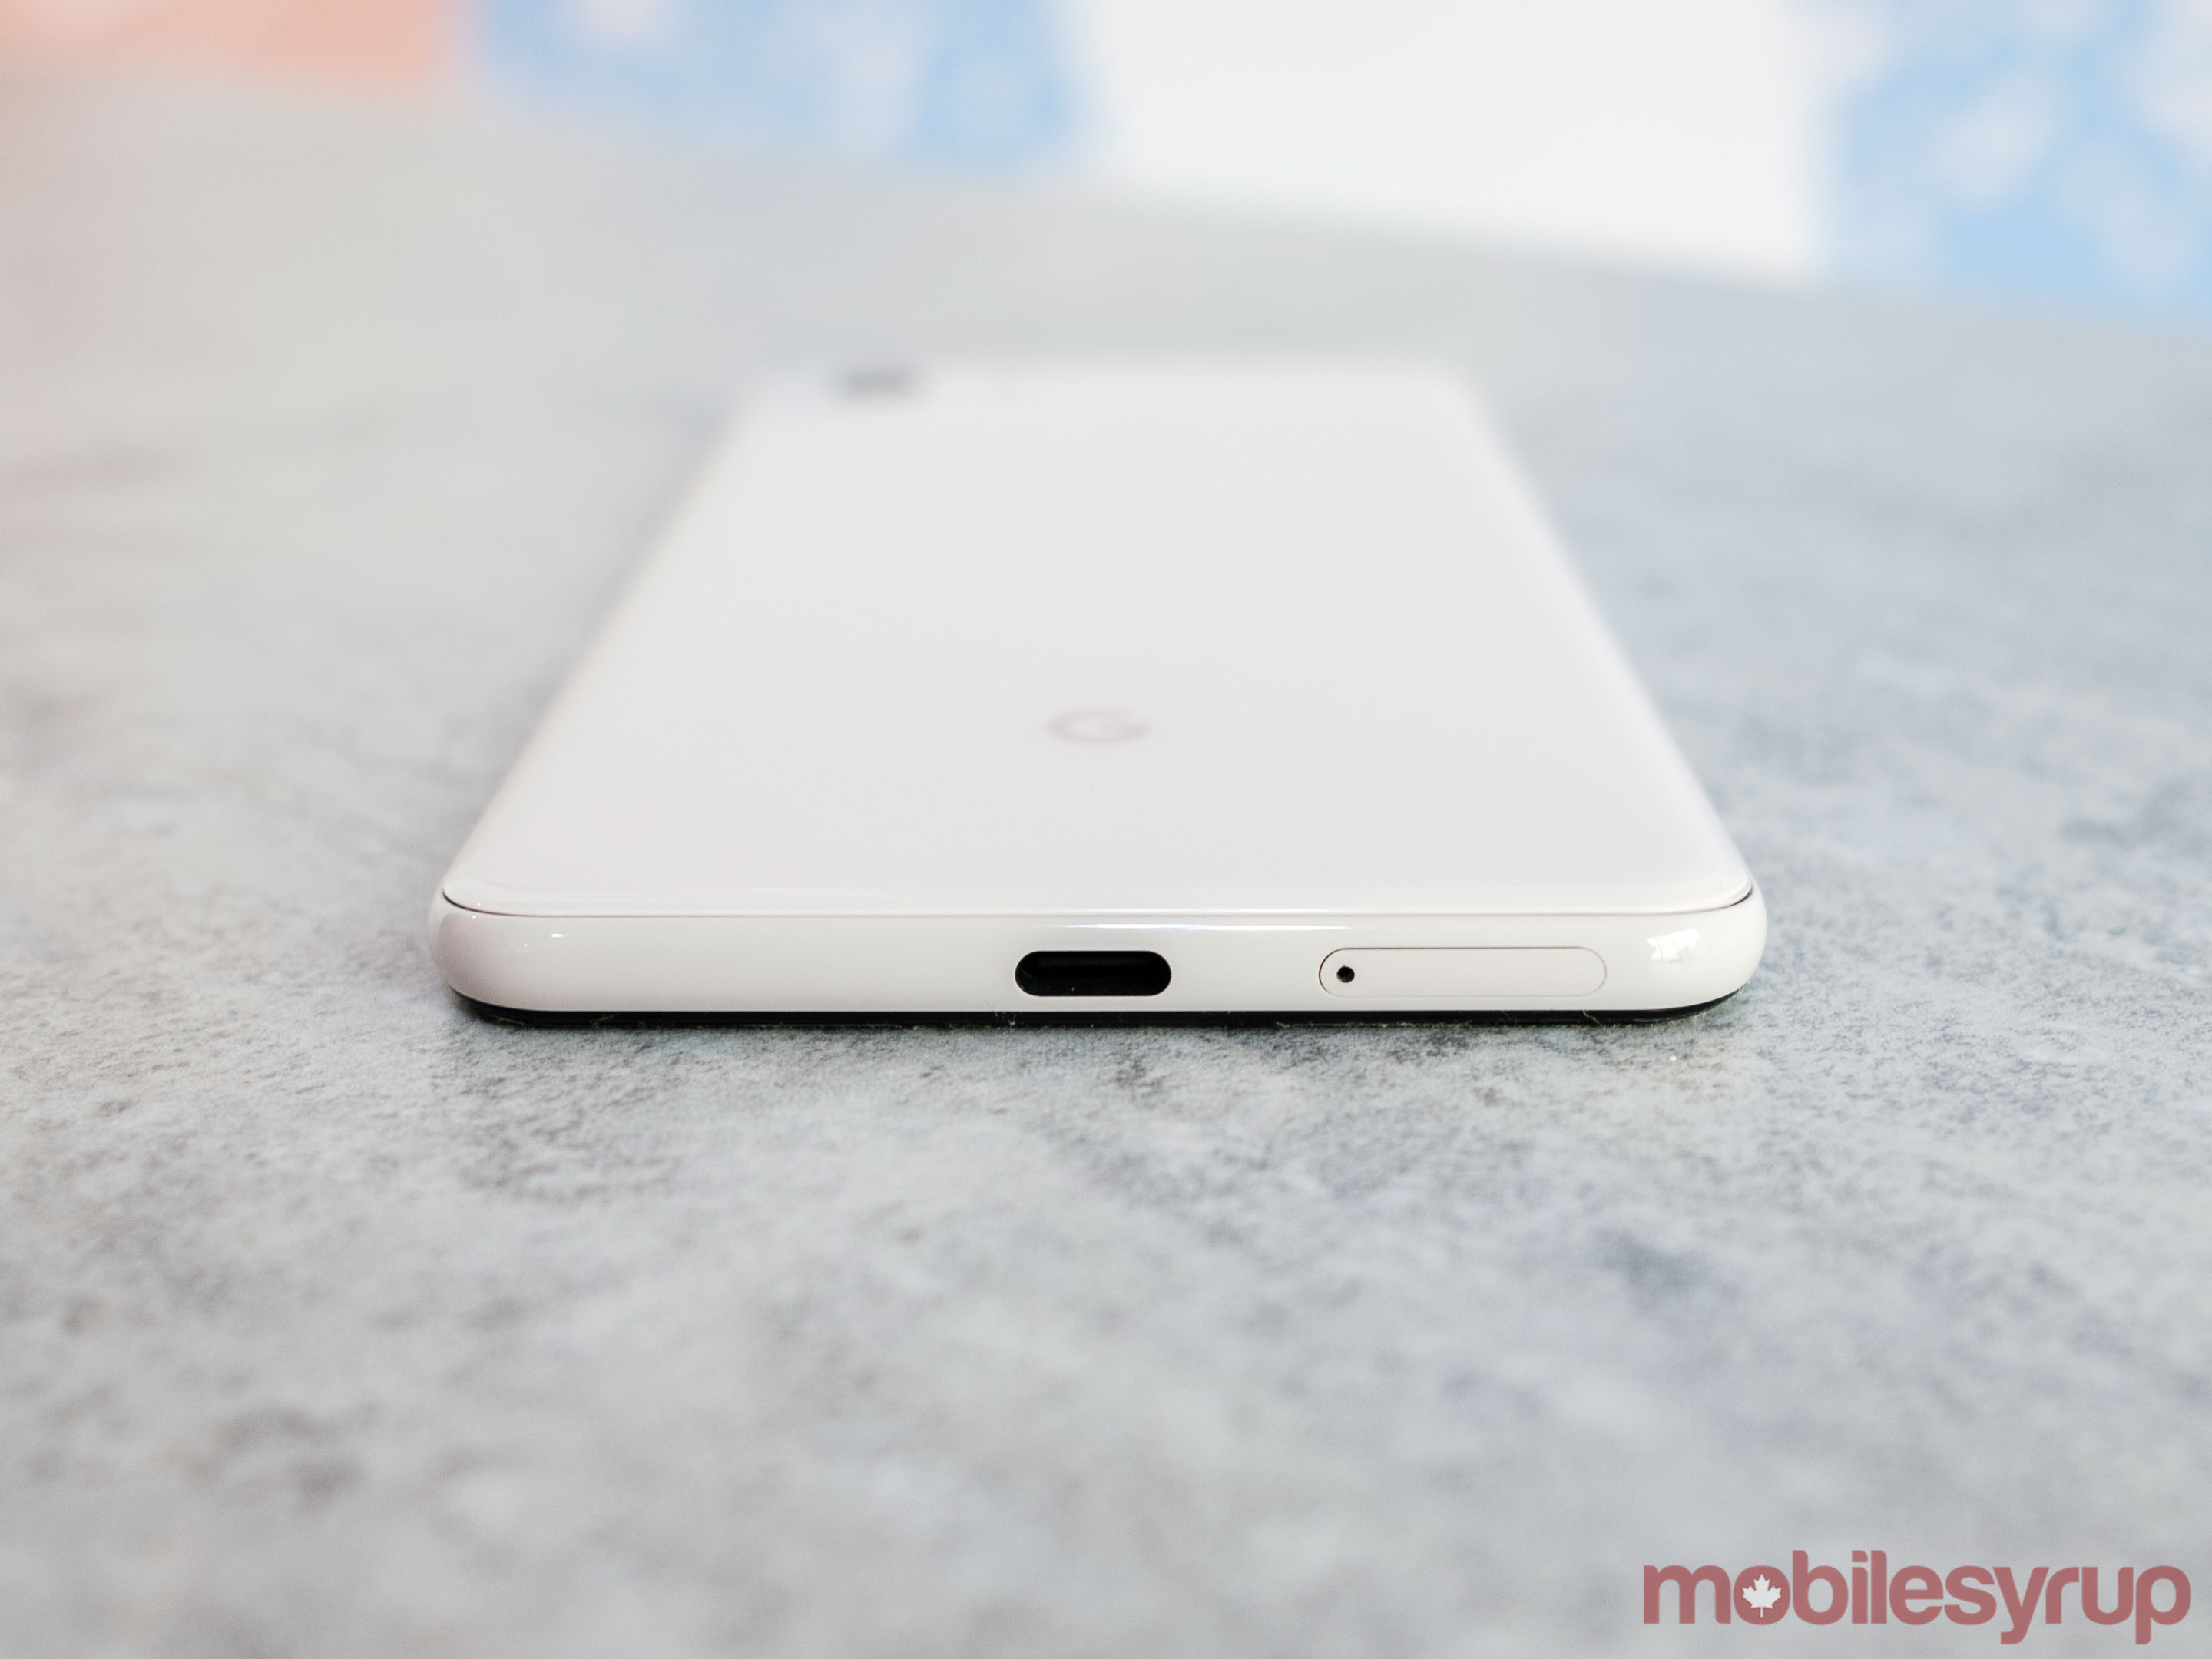 The bottom of the Pixel 3, showing SIM tray's new location